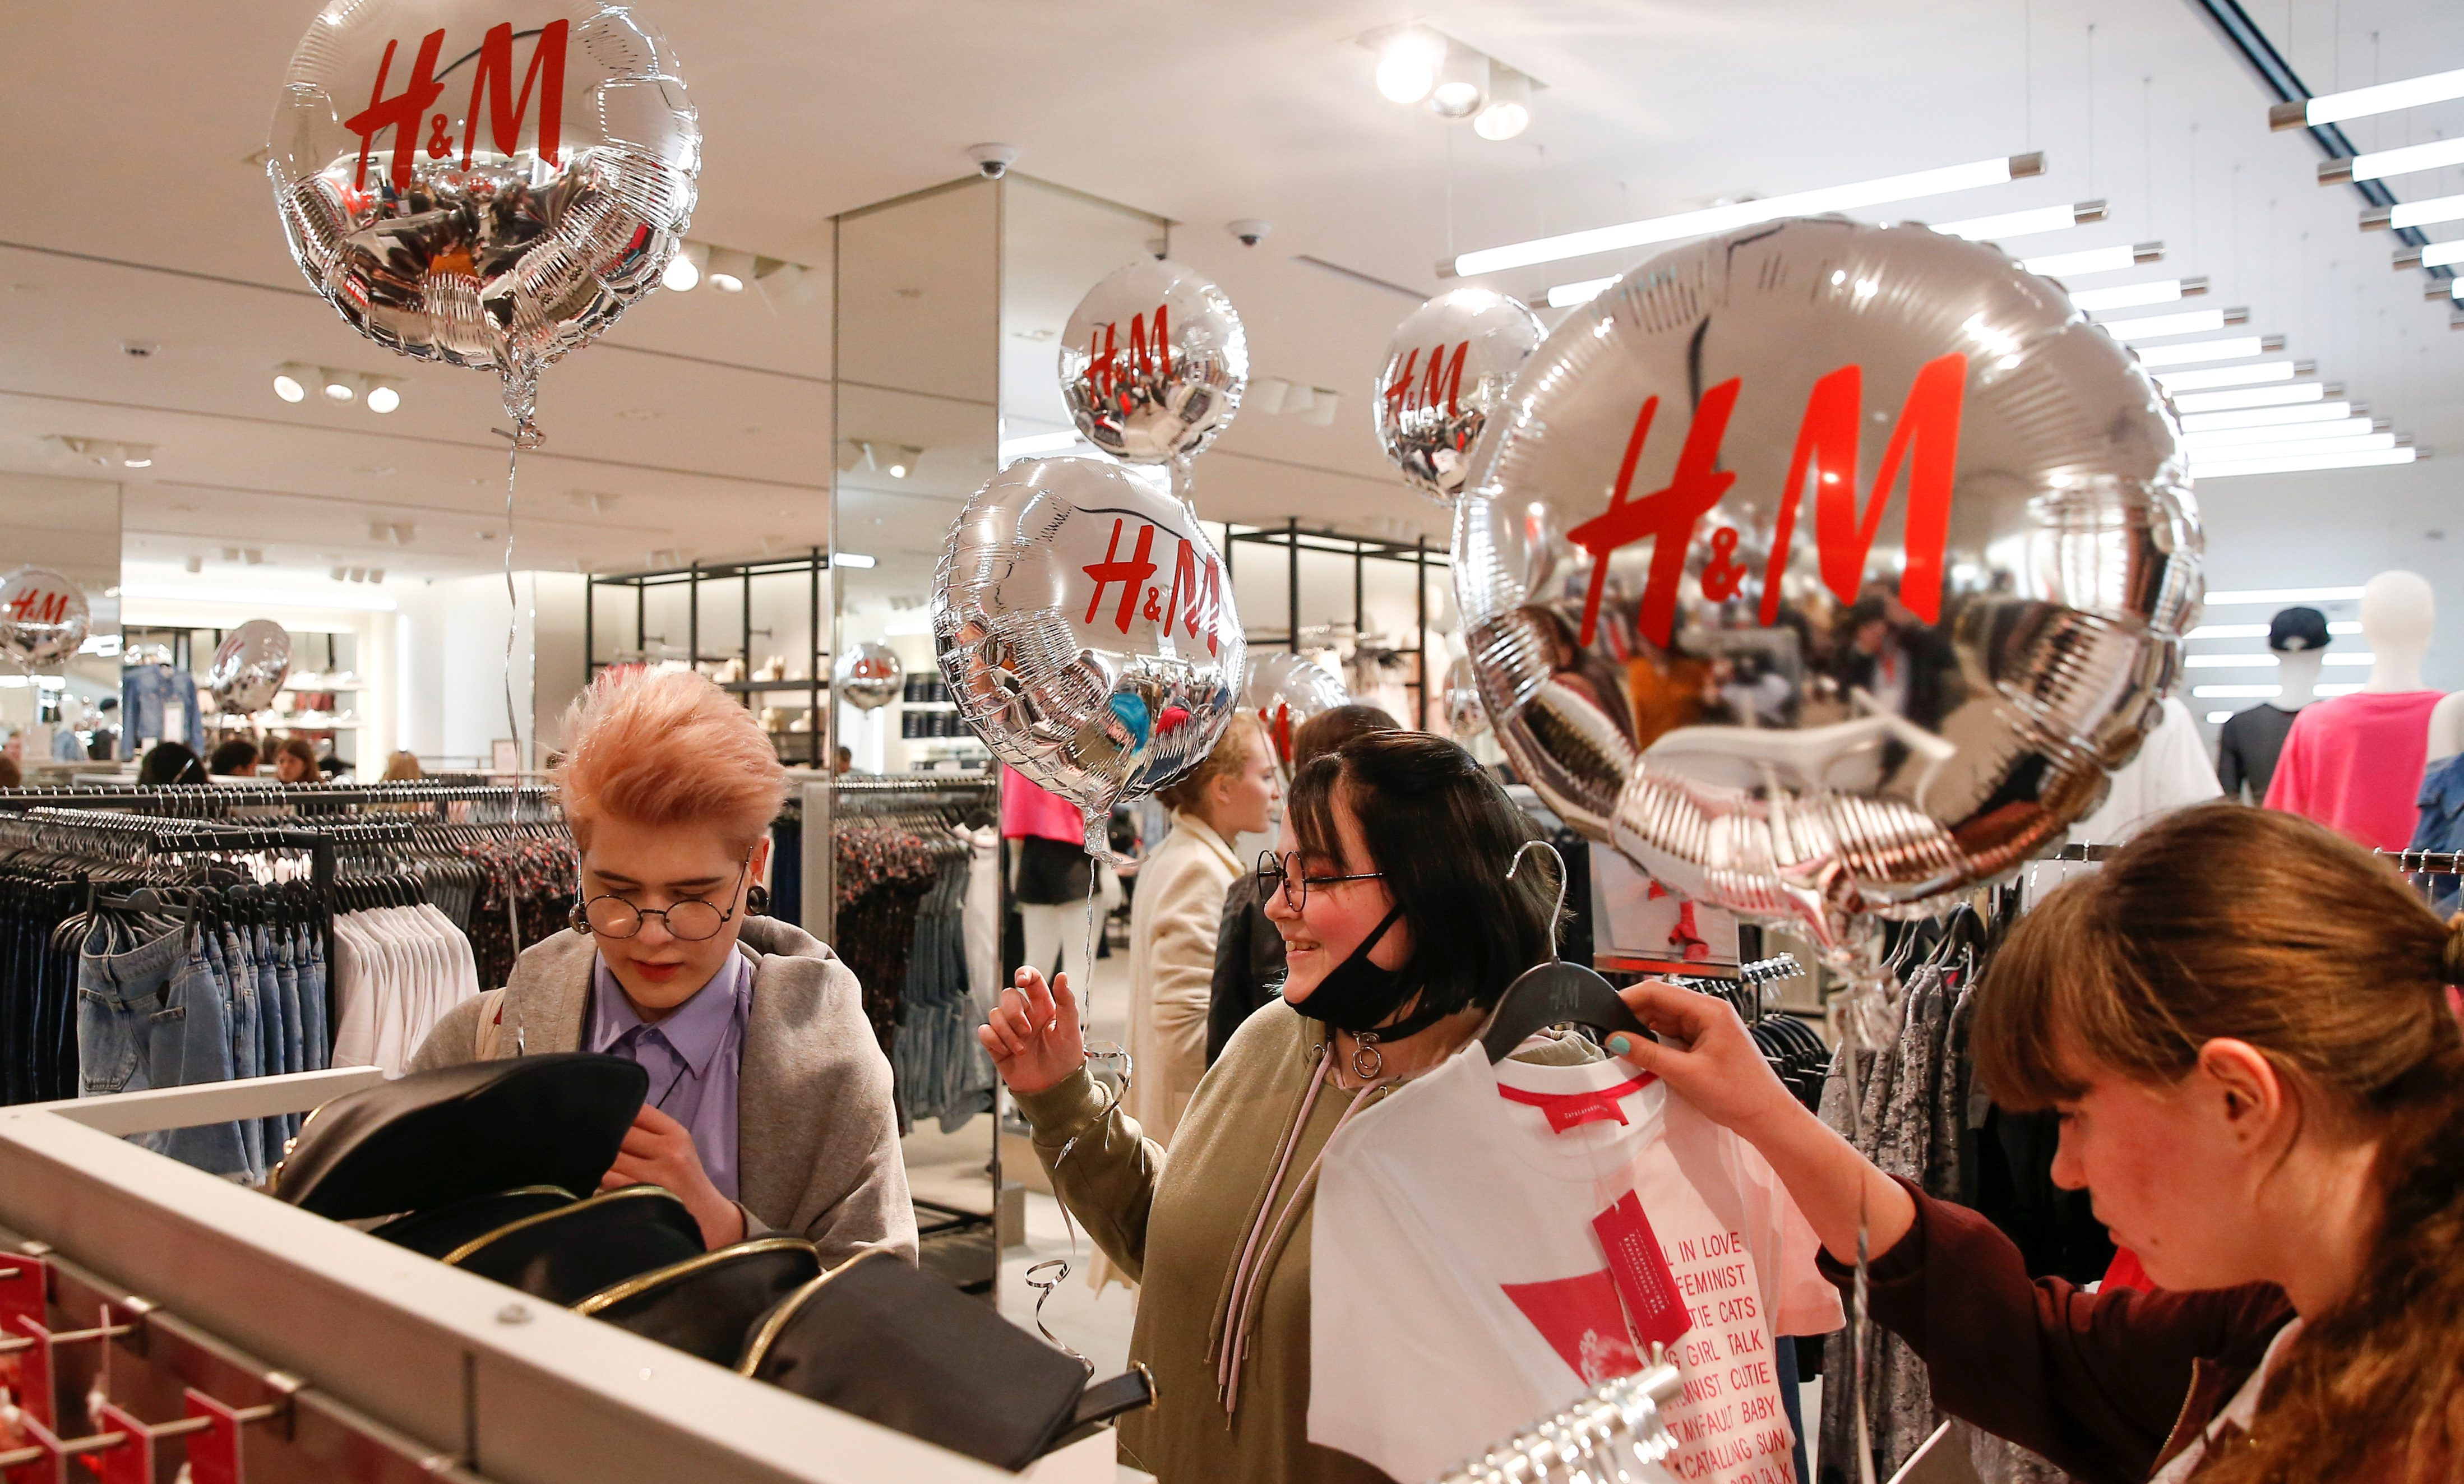 People Shop At The Swedish Fashion Retailer Hennes Mauritz Hm